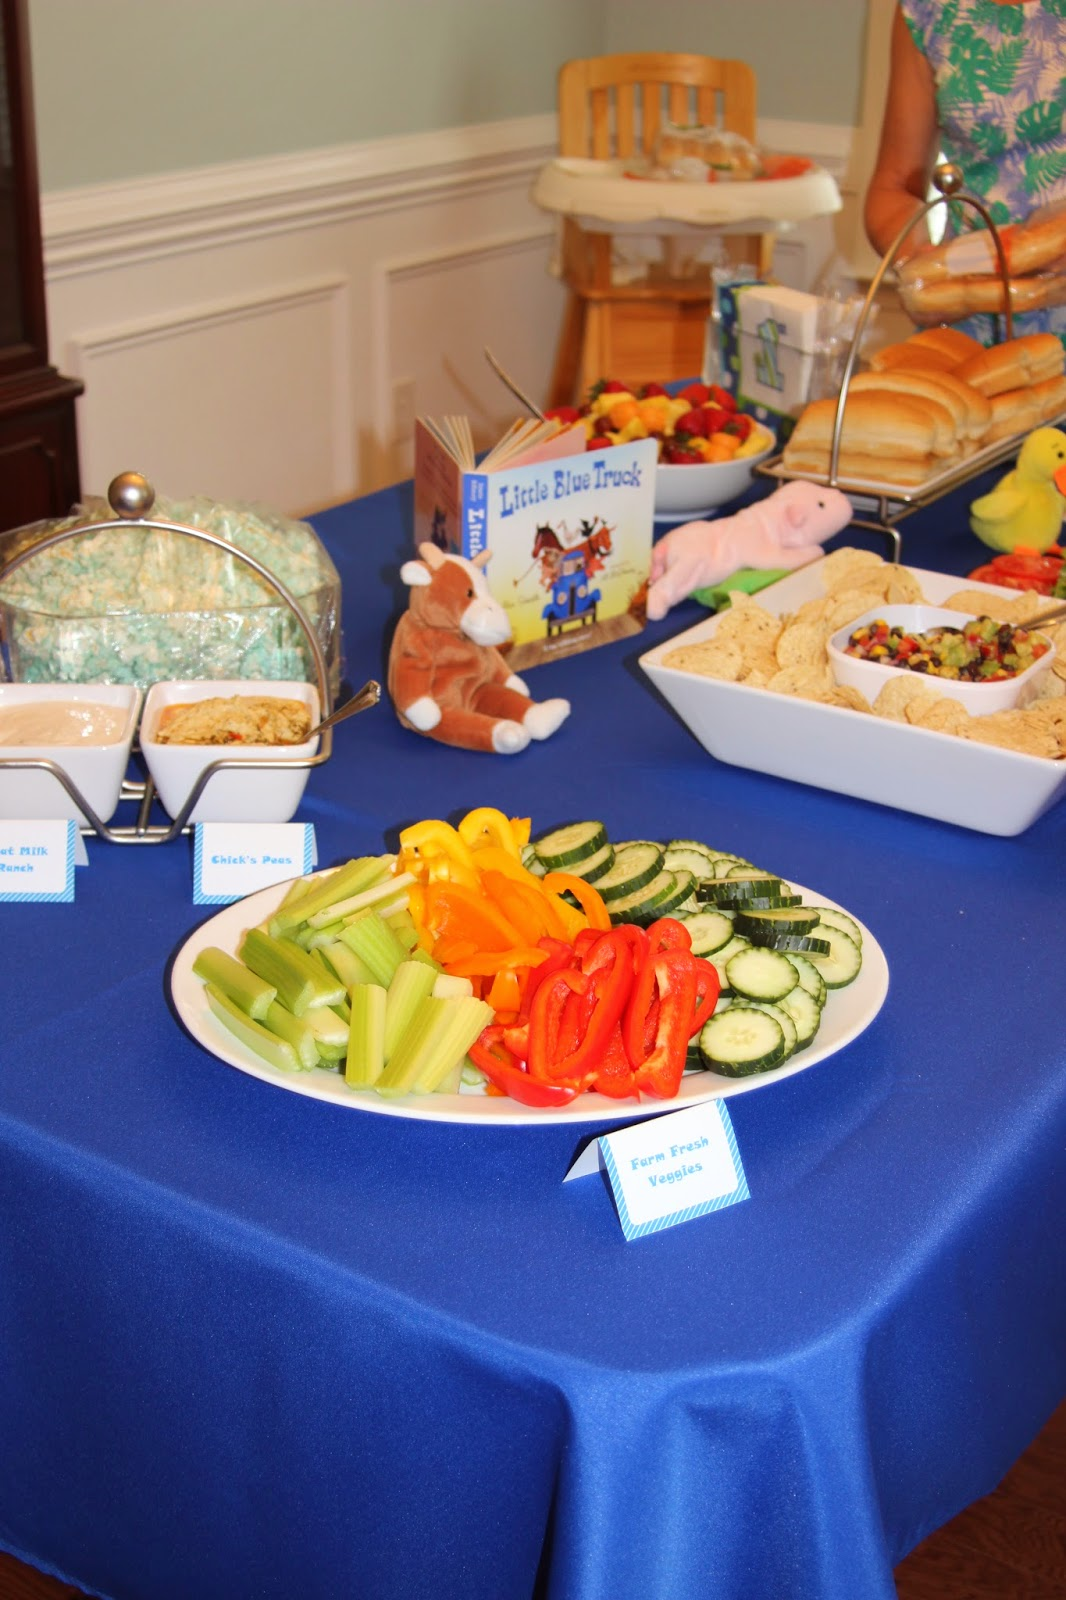 Childless A Little Blue Truck Birthday Party